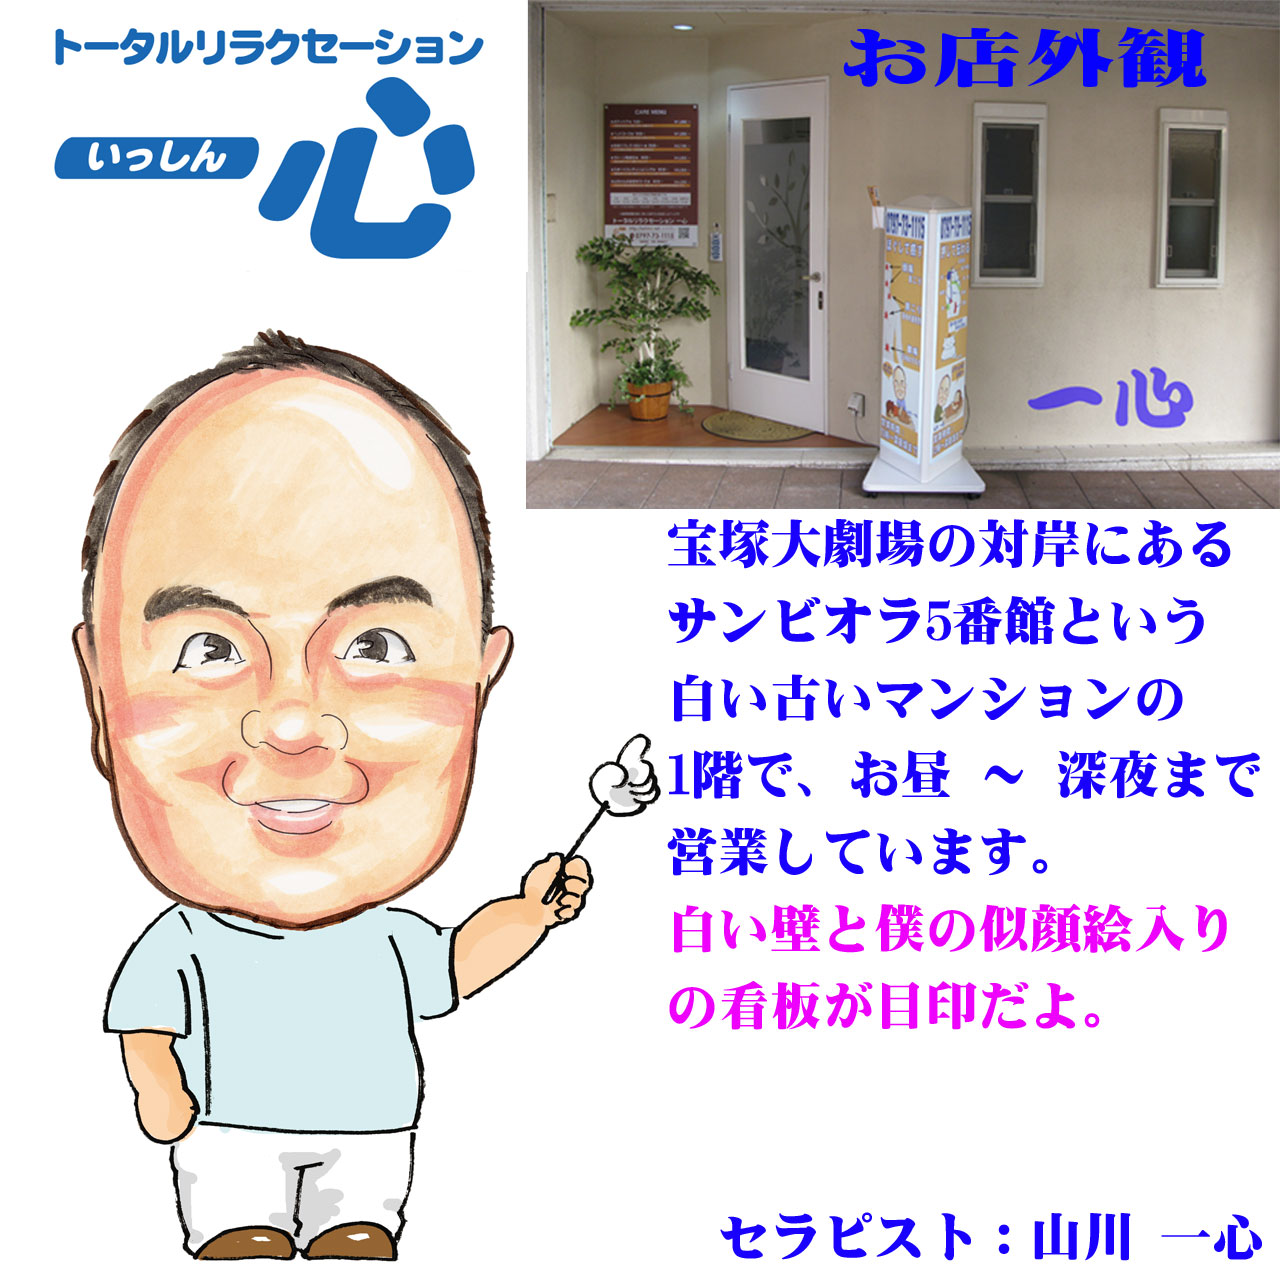 Description image of the shop and the guide お店の外観と案内の説明画像